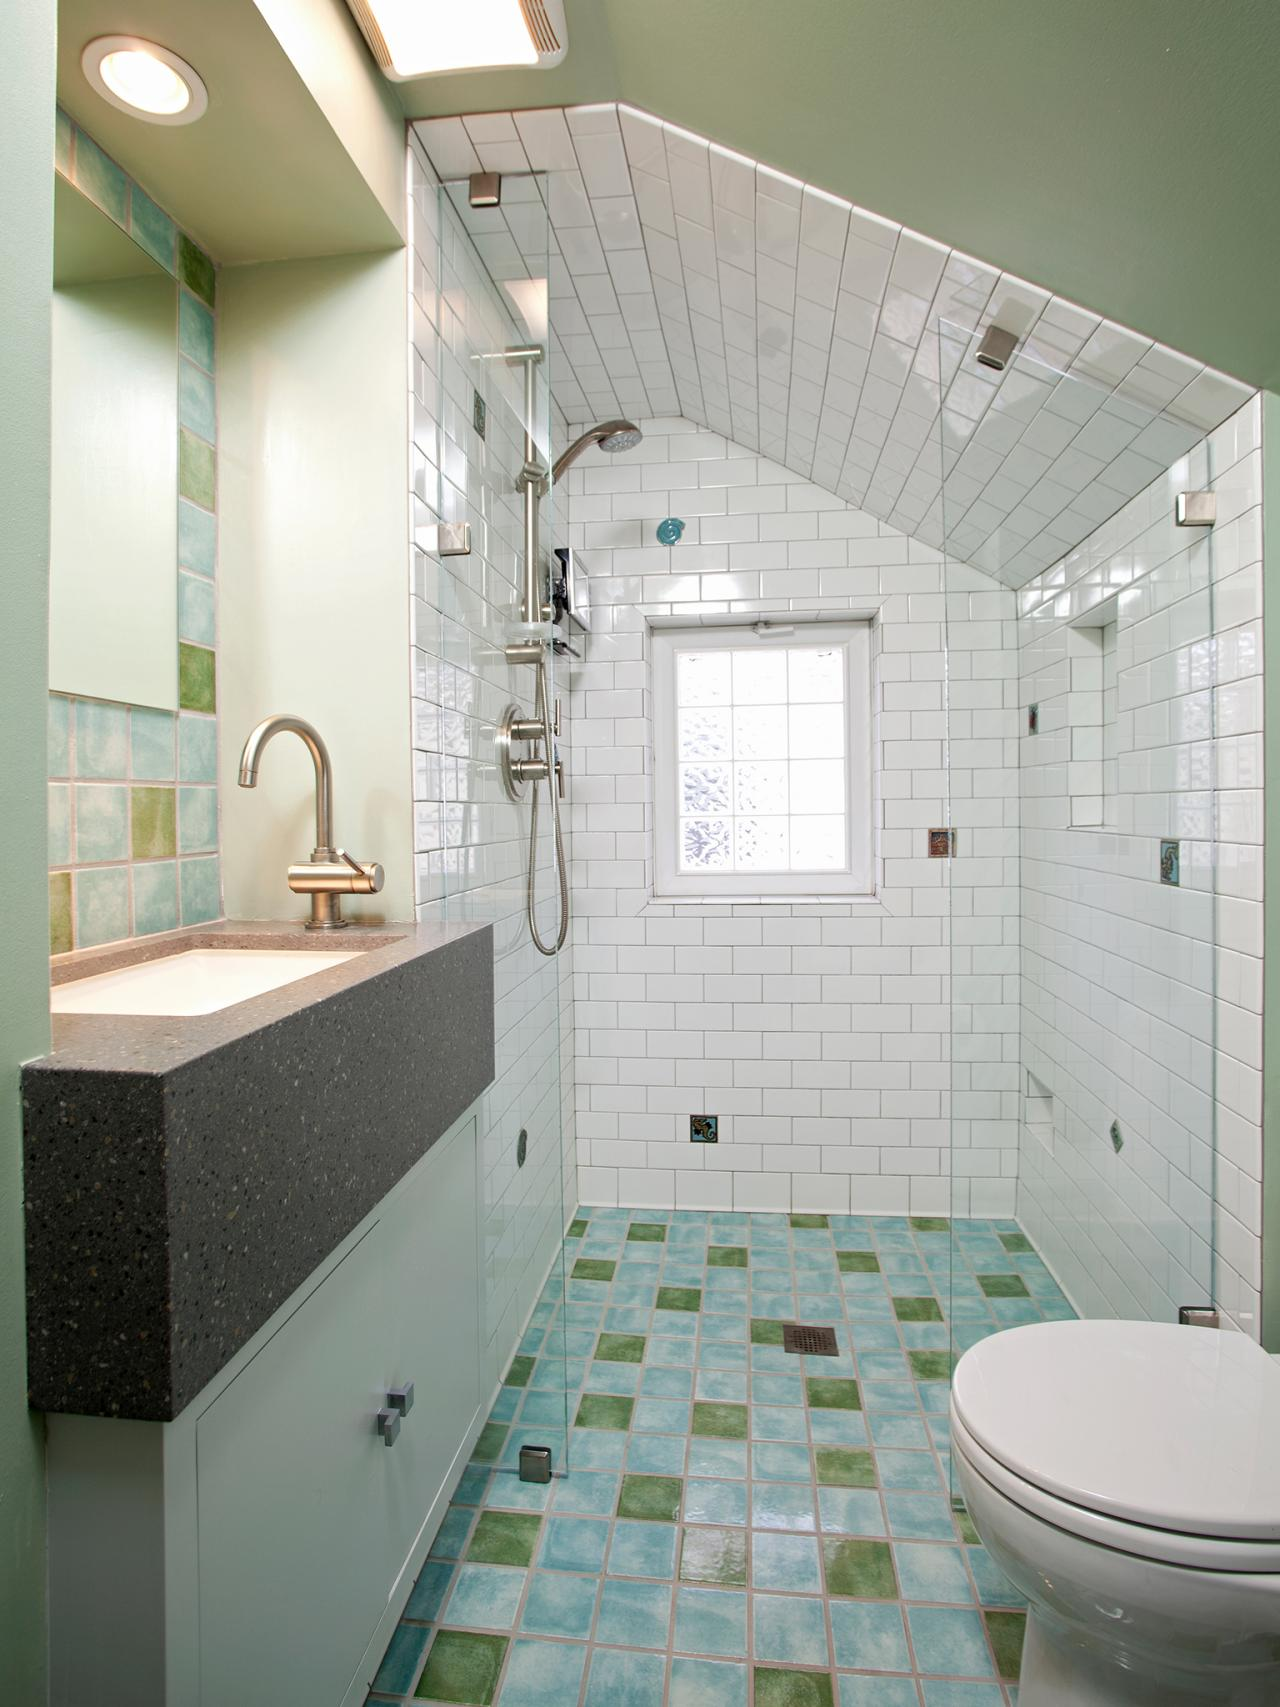 NKBA-2013_01-Art-Deco-Bathroom-050413_s3x4.jpg.rend.hgtvcom.1280.1707